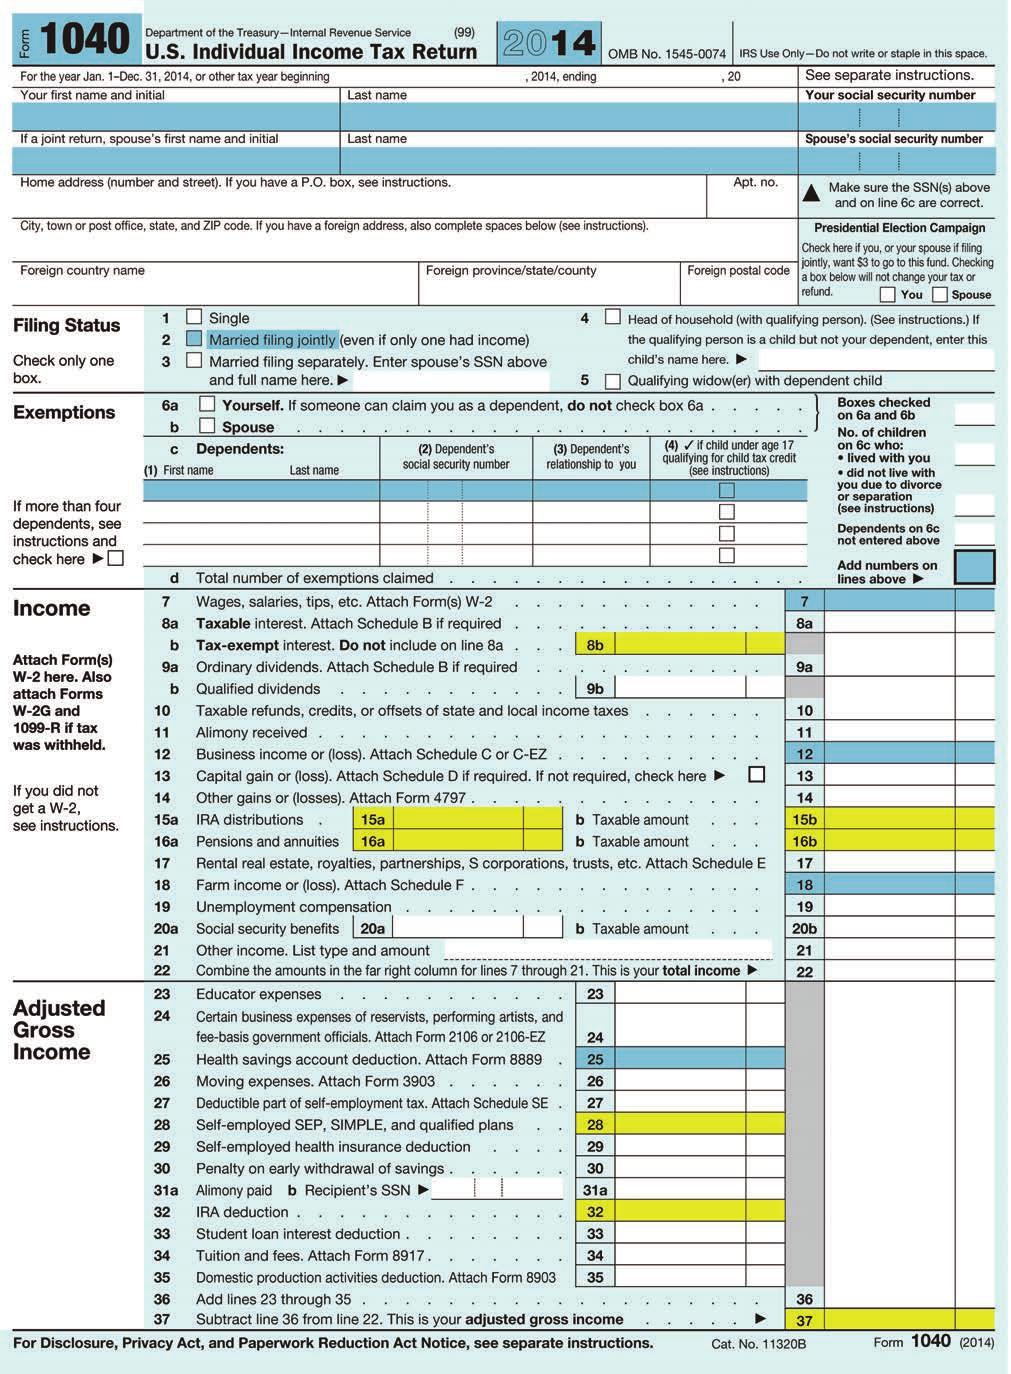 Sample Irs Form 1040 Theresa And Frank Roberts Pdf